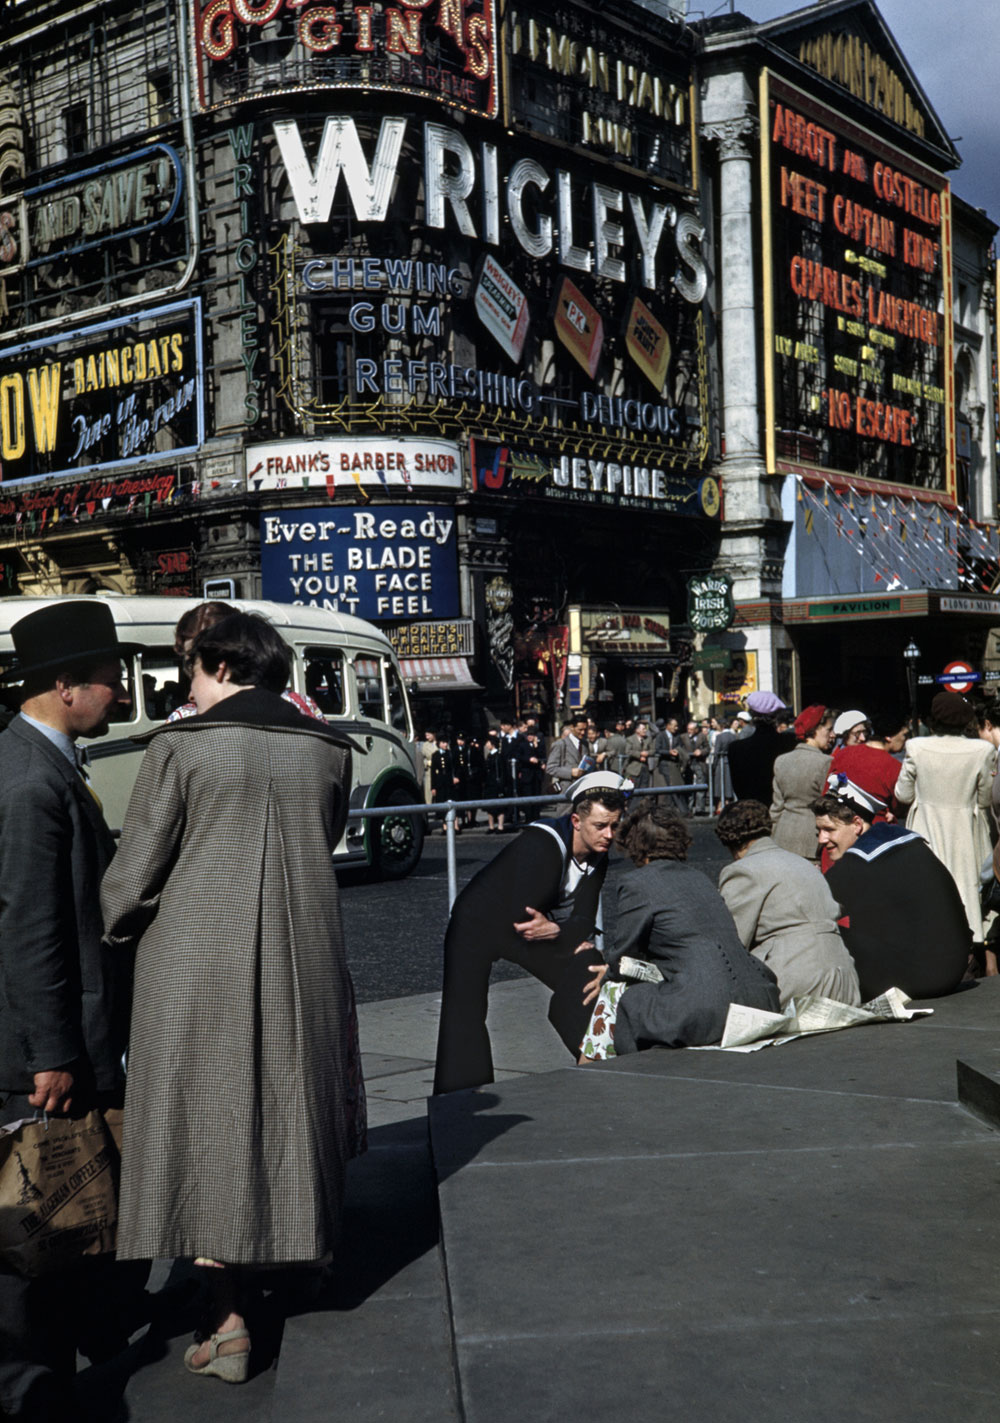 Piccadilly Circus in 1953 by Robert Capa